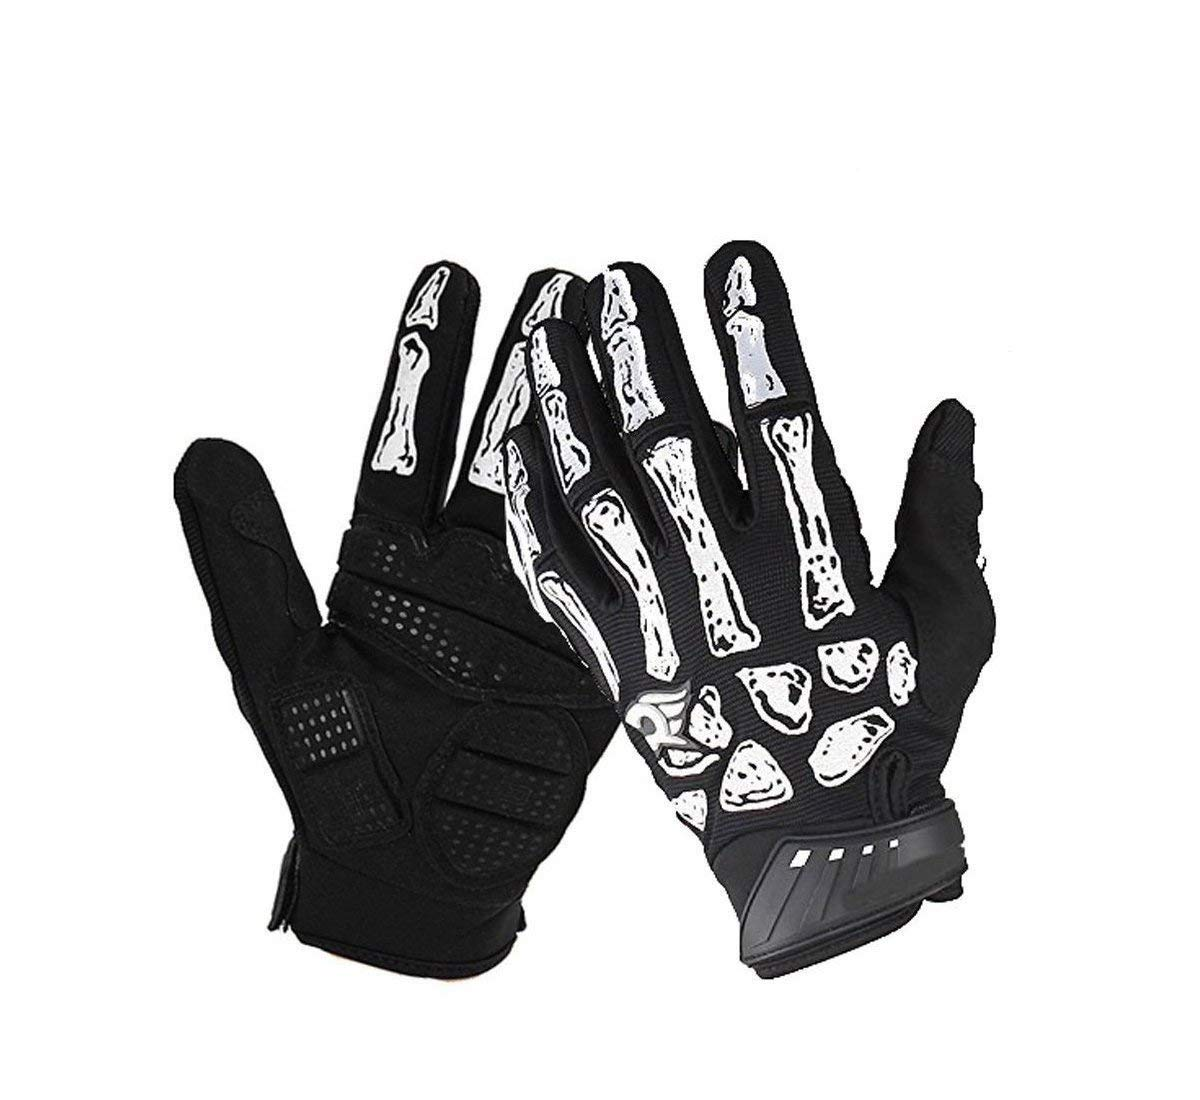 Men's Accessories Gloves Skeleton Mechanics Gloves Storage Wars Barry Weiss Style with FREE SHIPPING L XL